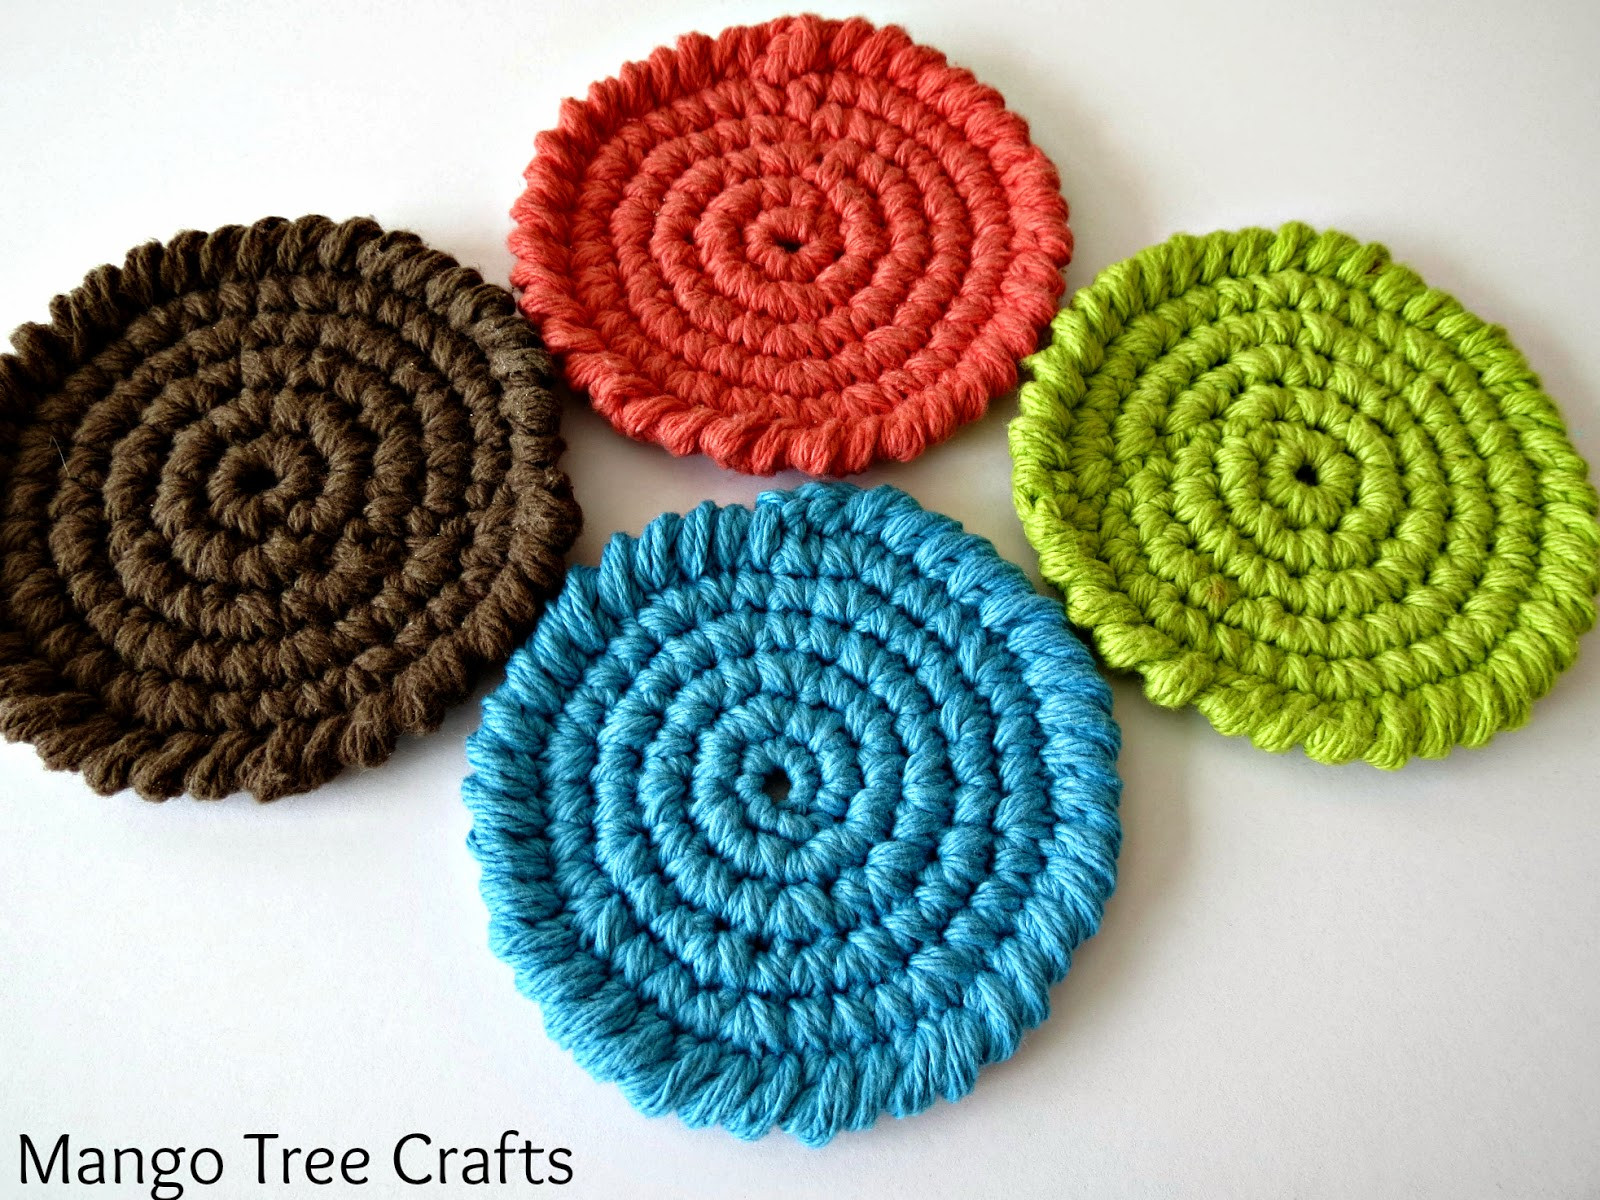 Awesome Mango Tree Crafts Free Crochet Coasters Pattern Crochet Crafts Of Wonderful 41 Models Crochet Crafts